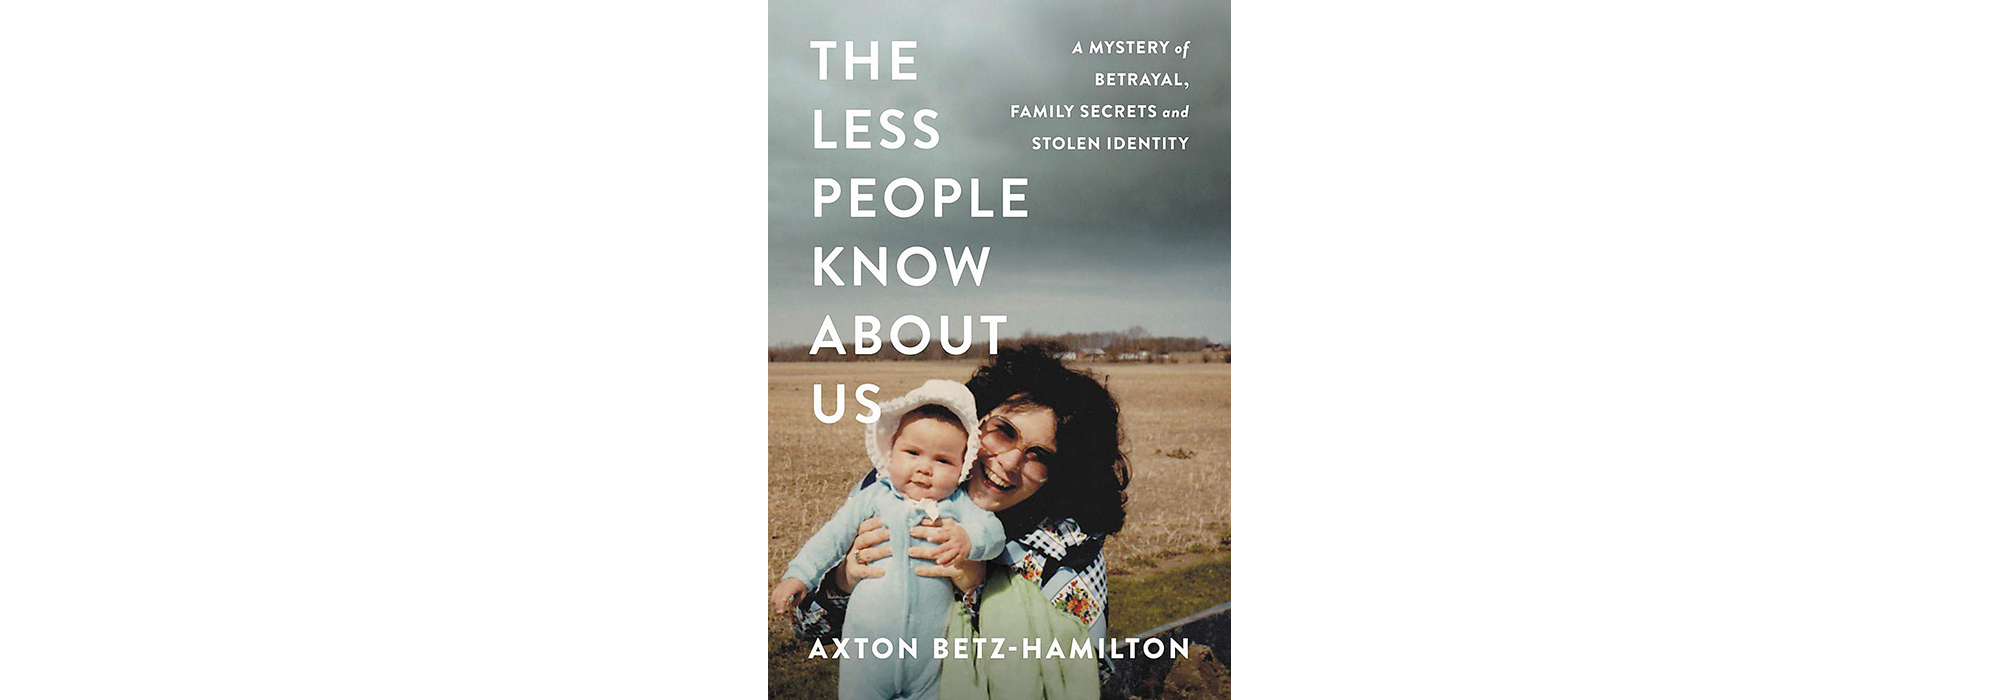 Cover of The Less People Know About Us, by Axton Betz-Hamilton